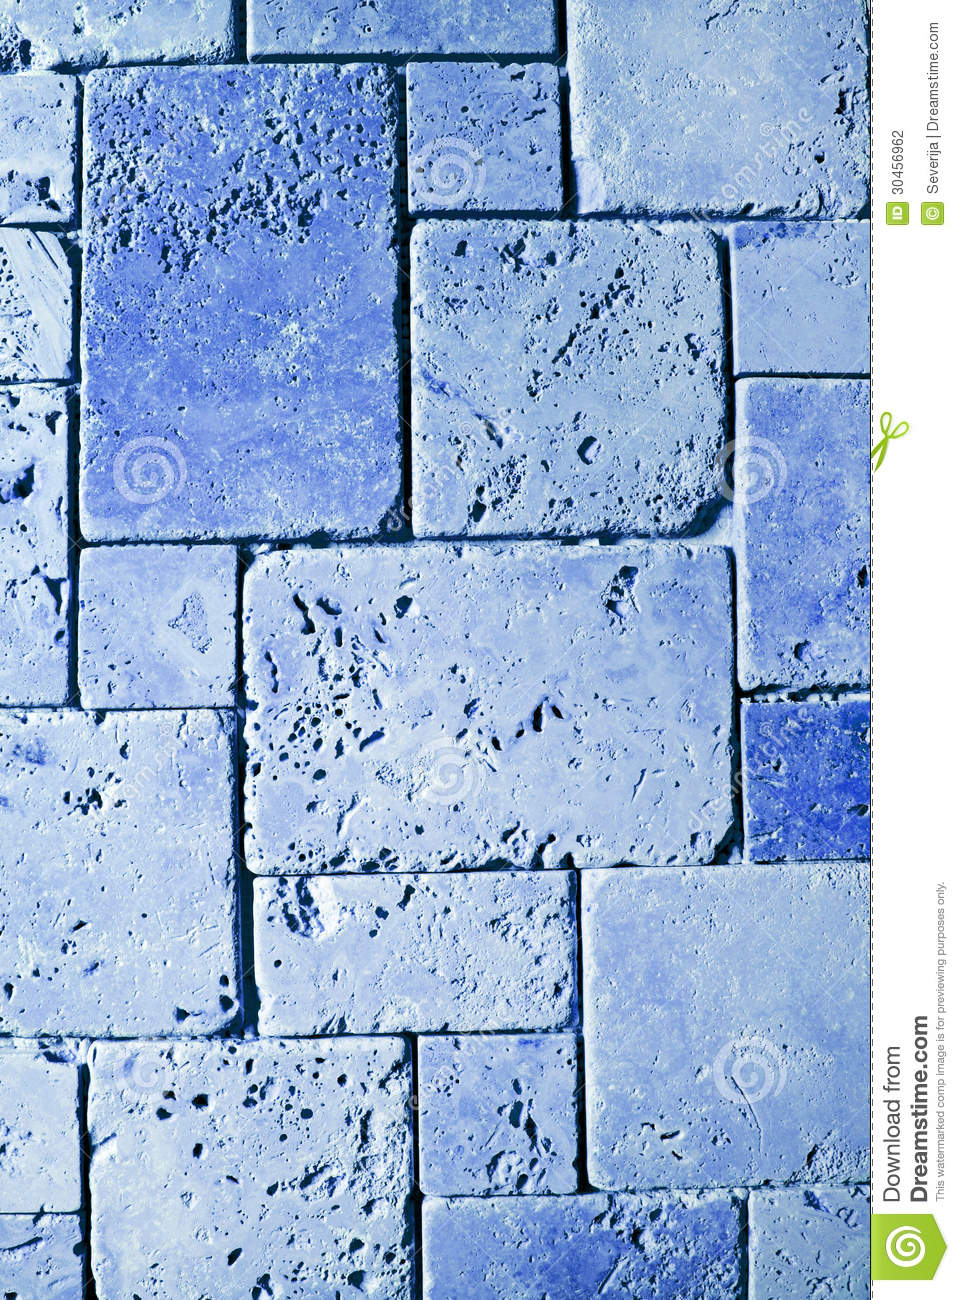 Travertine tiles texture stock photo. Image of abstract - 30456962